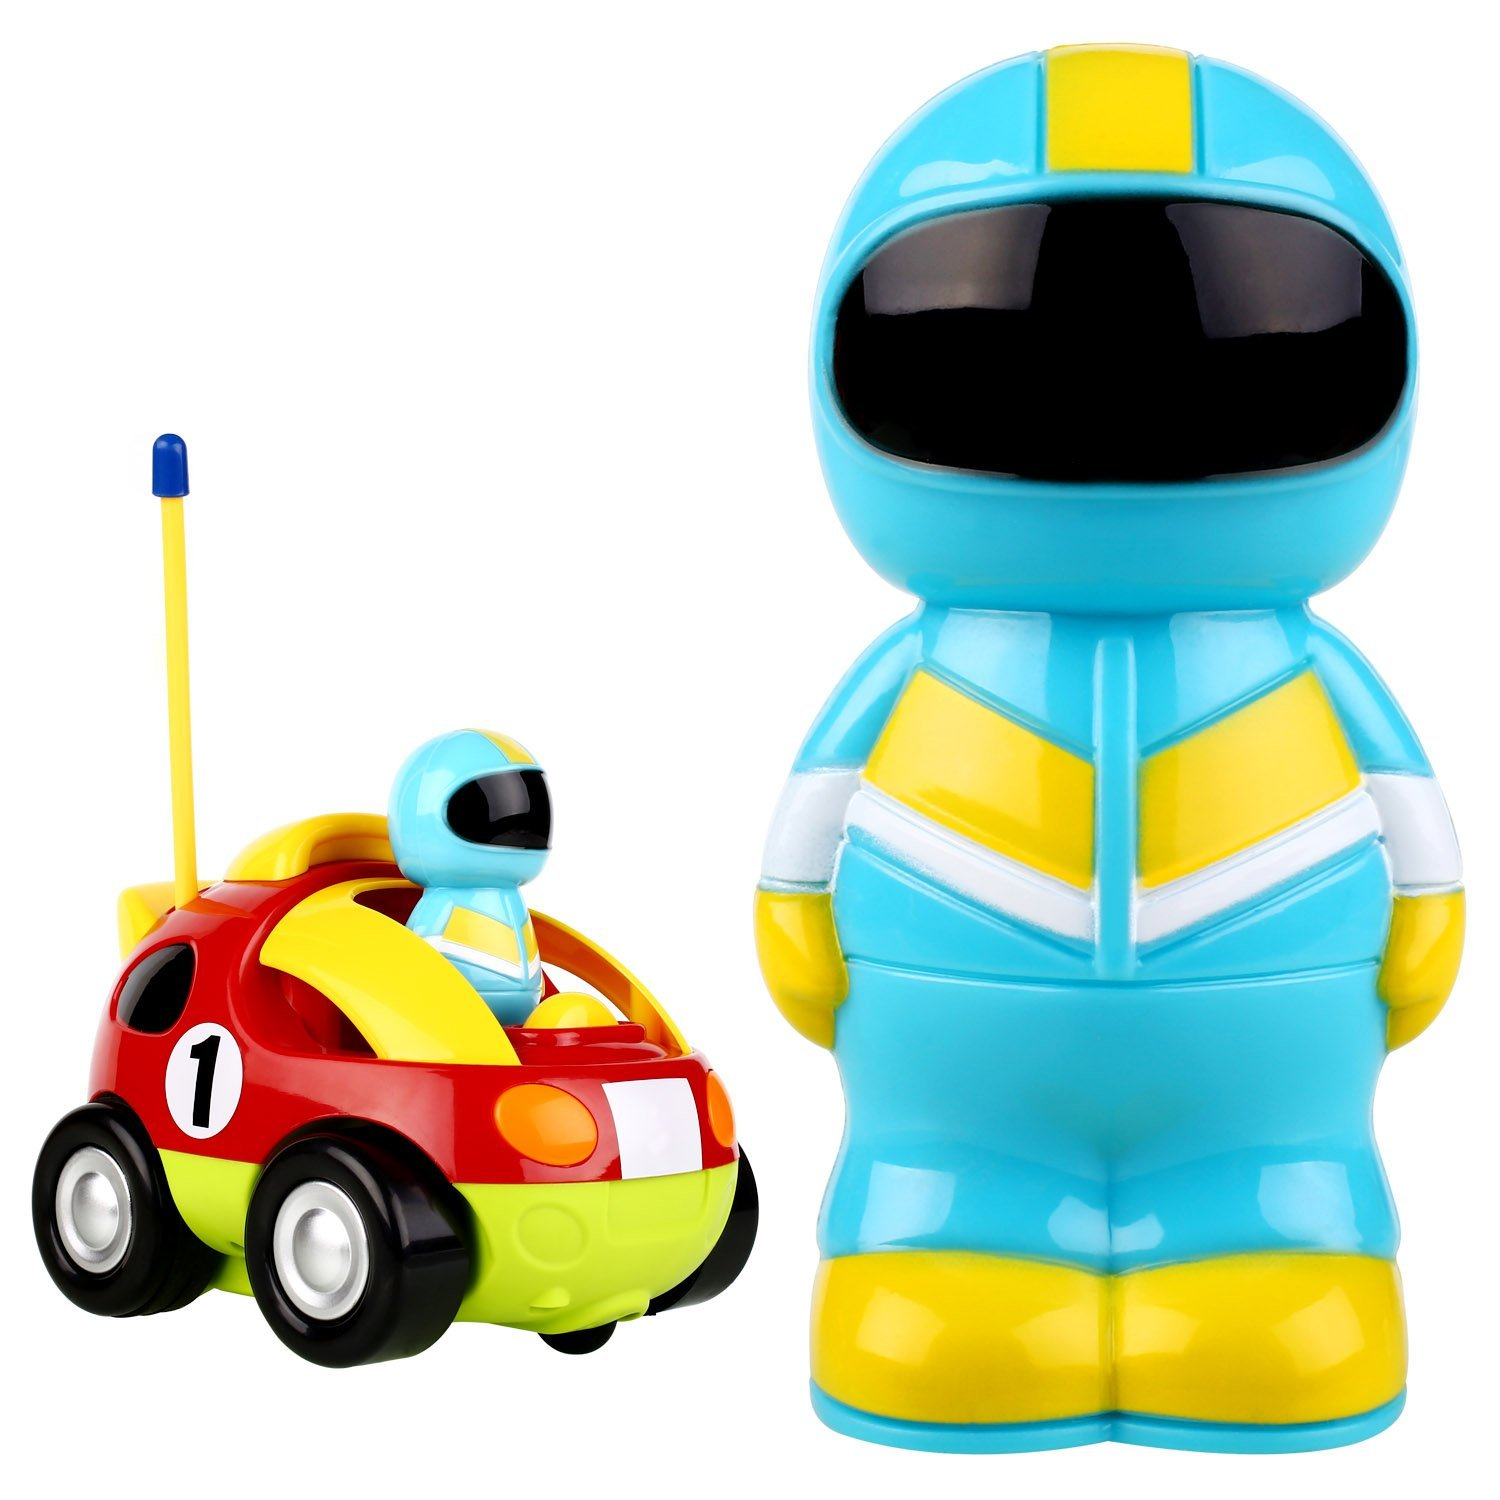 Peradix R/C Race Cartoon Car Radio Control Toy for Toddlers and Kids(Random Color)